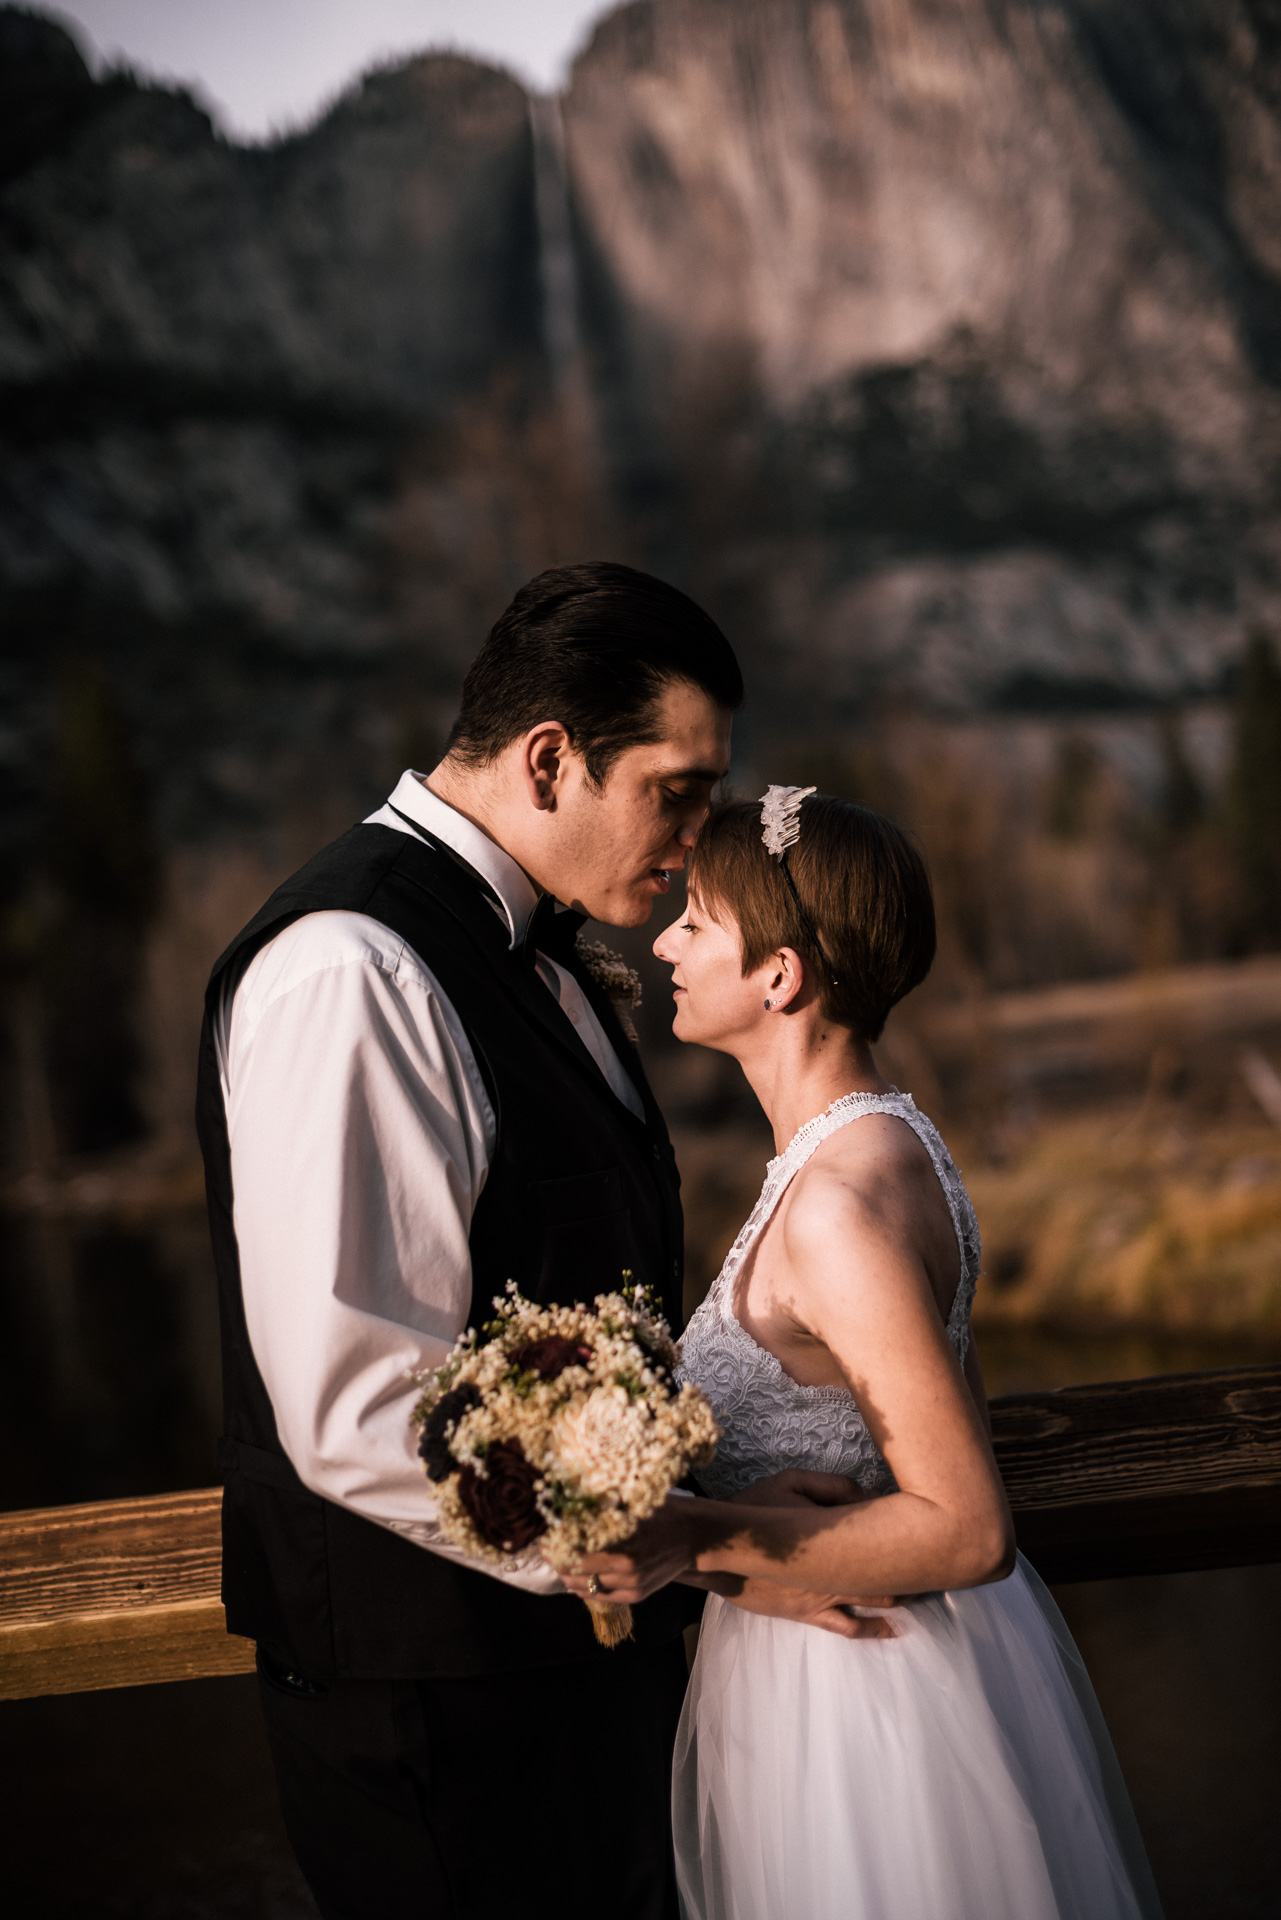 couple elopes to yosemite for romantic wedding photos at swinging bridge